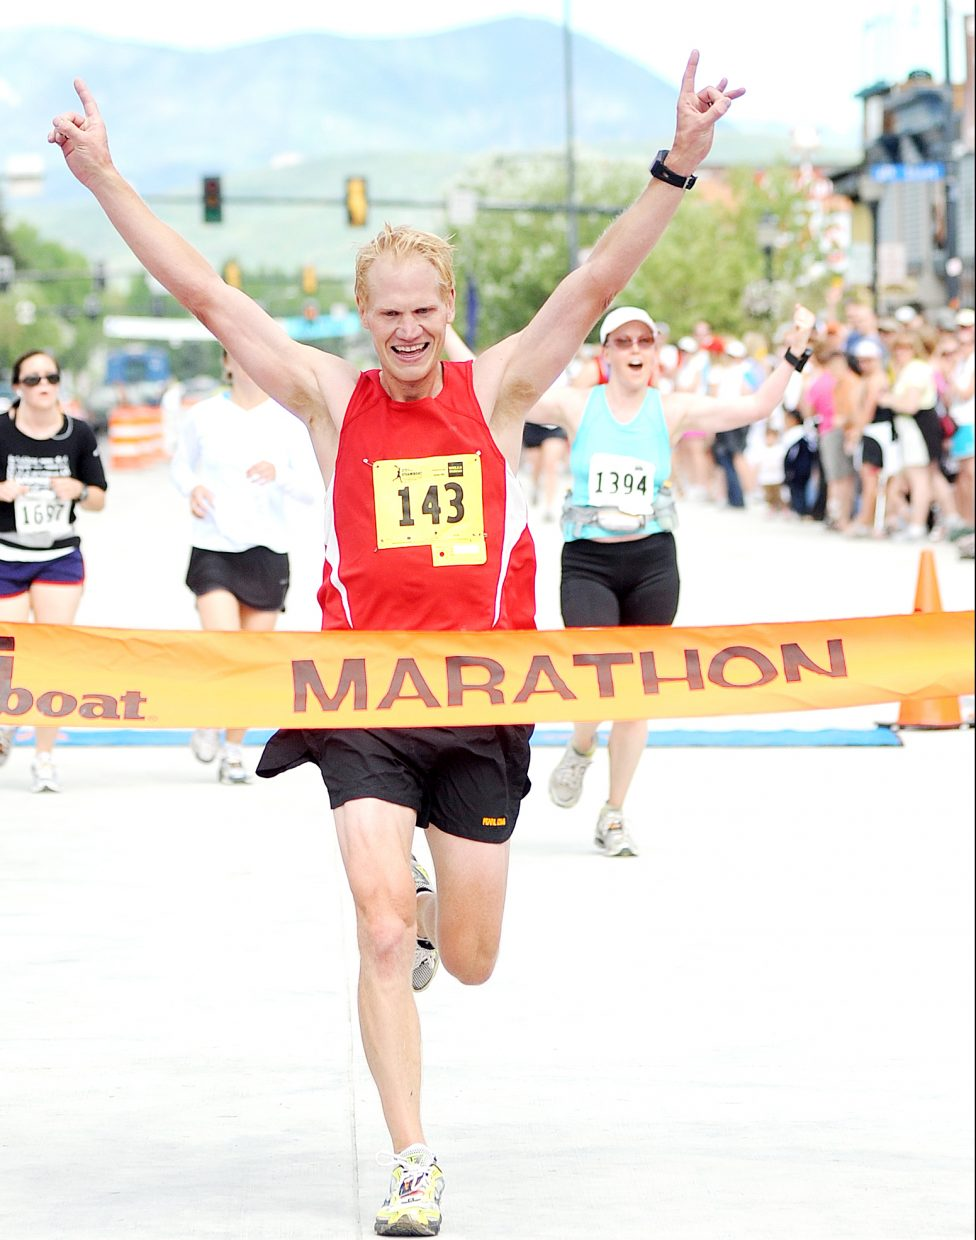 Dan Edstrom, of Denver, throws his arms up as he crosses the finish line to win the 2010 Steamboat Marathon. He finished the 26.2 mile race in 2 hours, 47 minutes and 37 seconds.